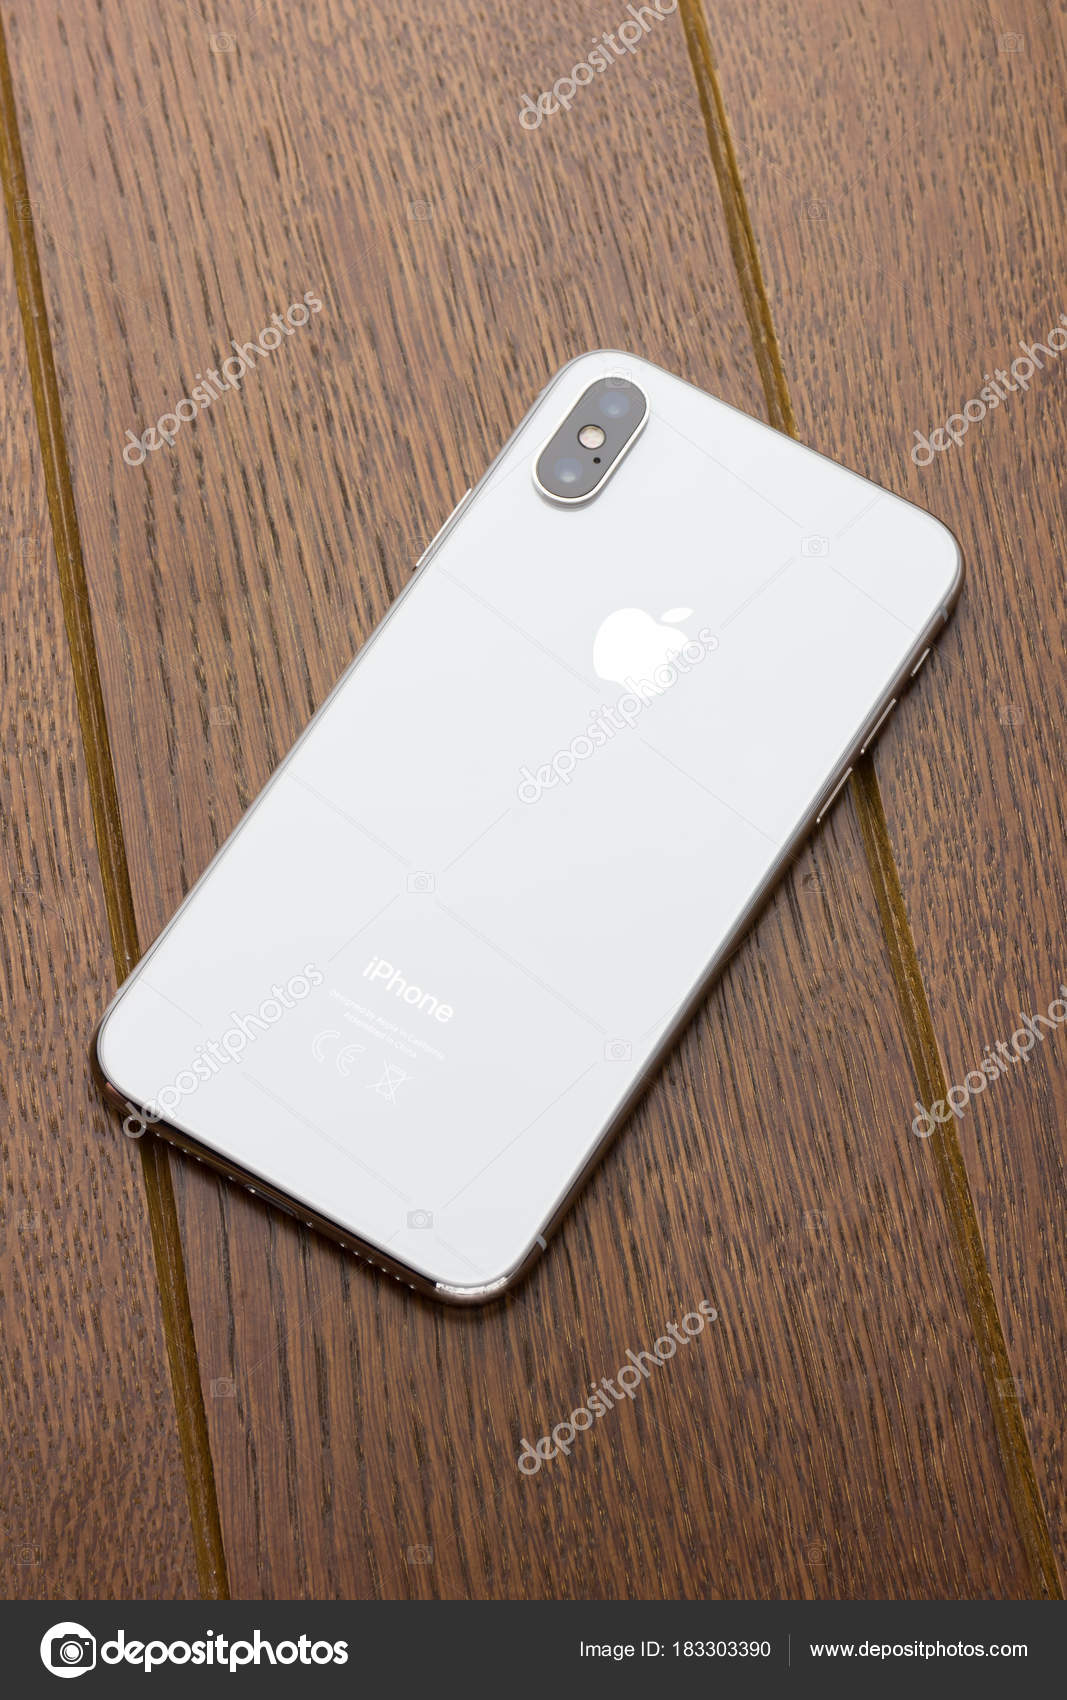 Rostov On Don Russia Feb 2018 Iphone X Lies On A Wooden Table